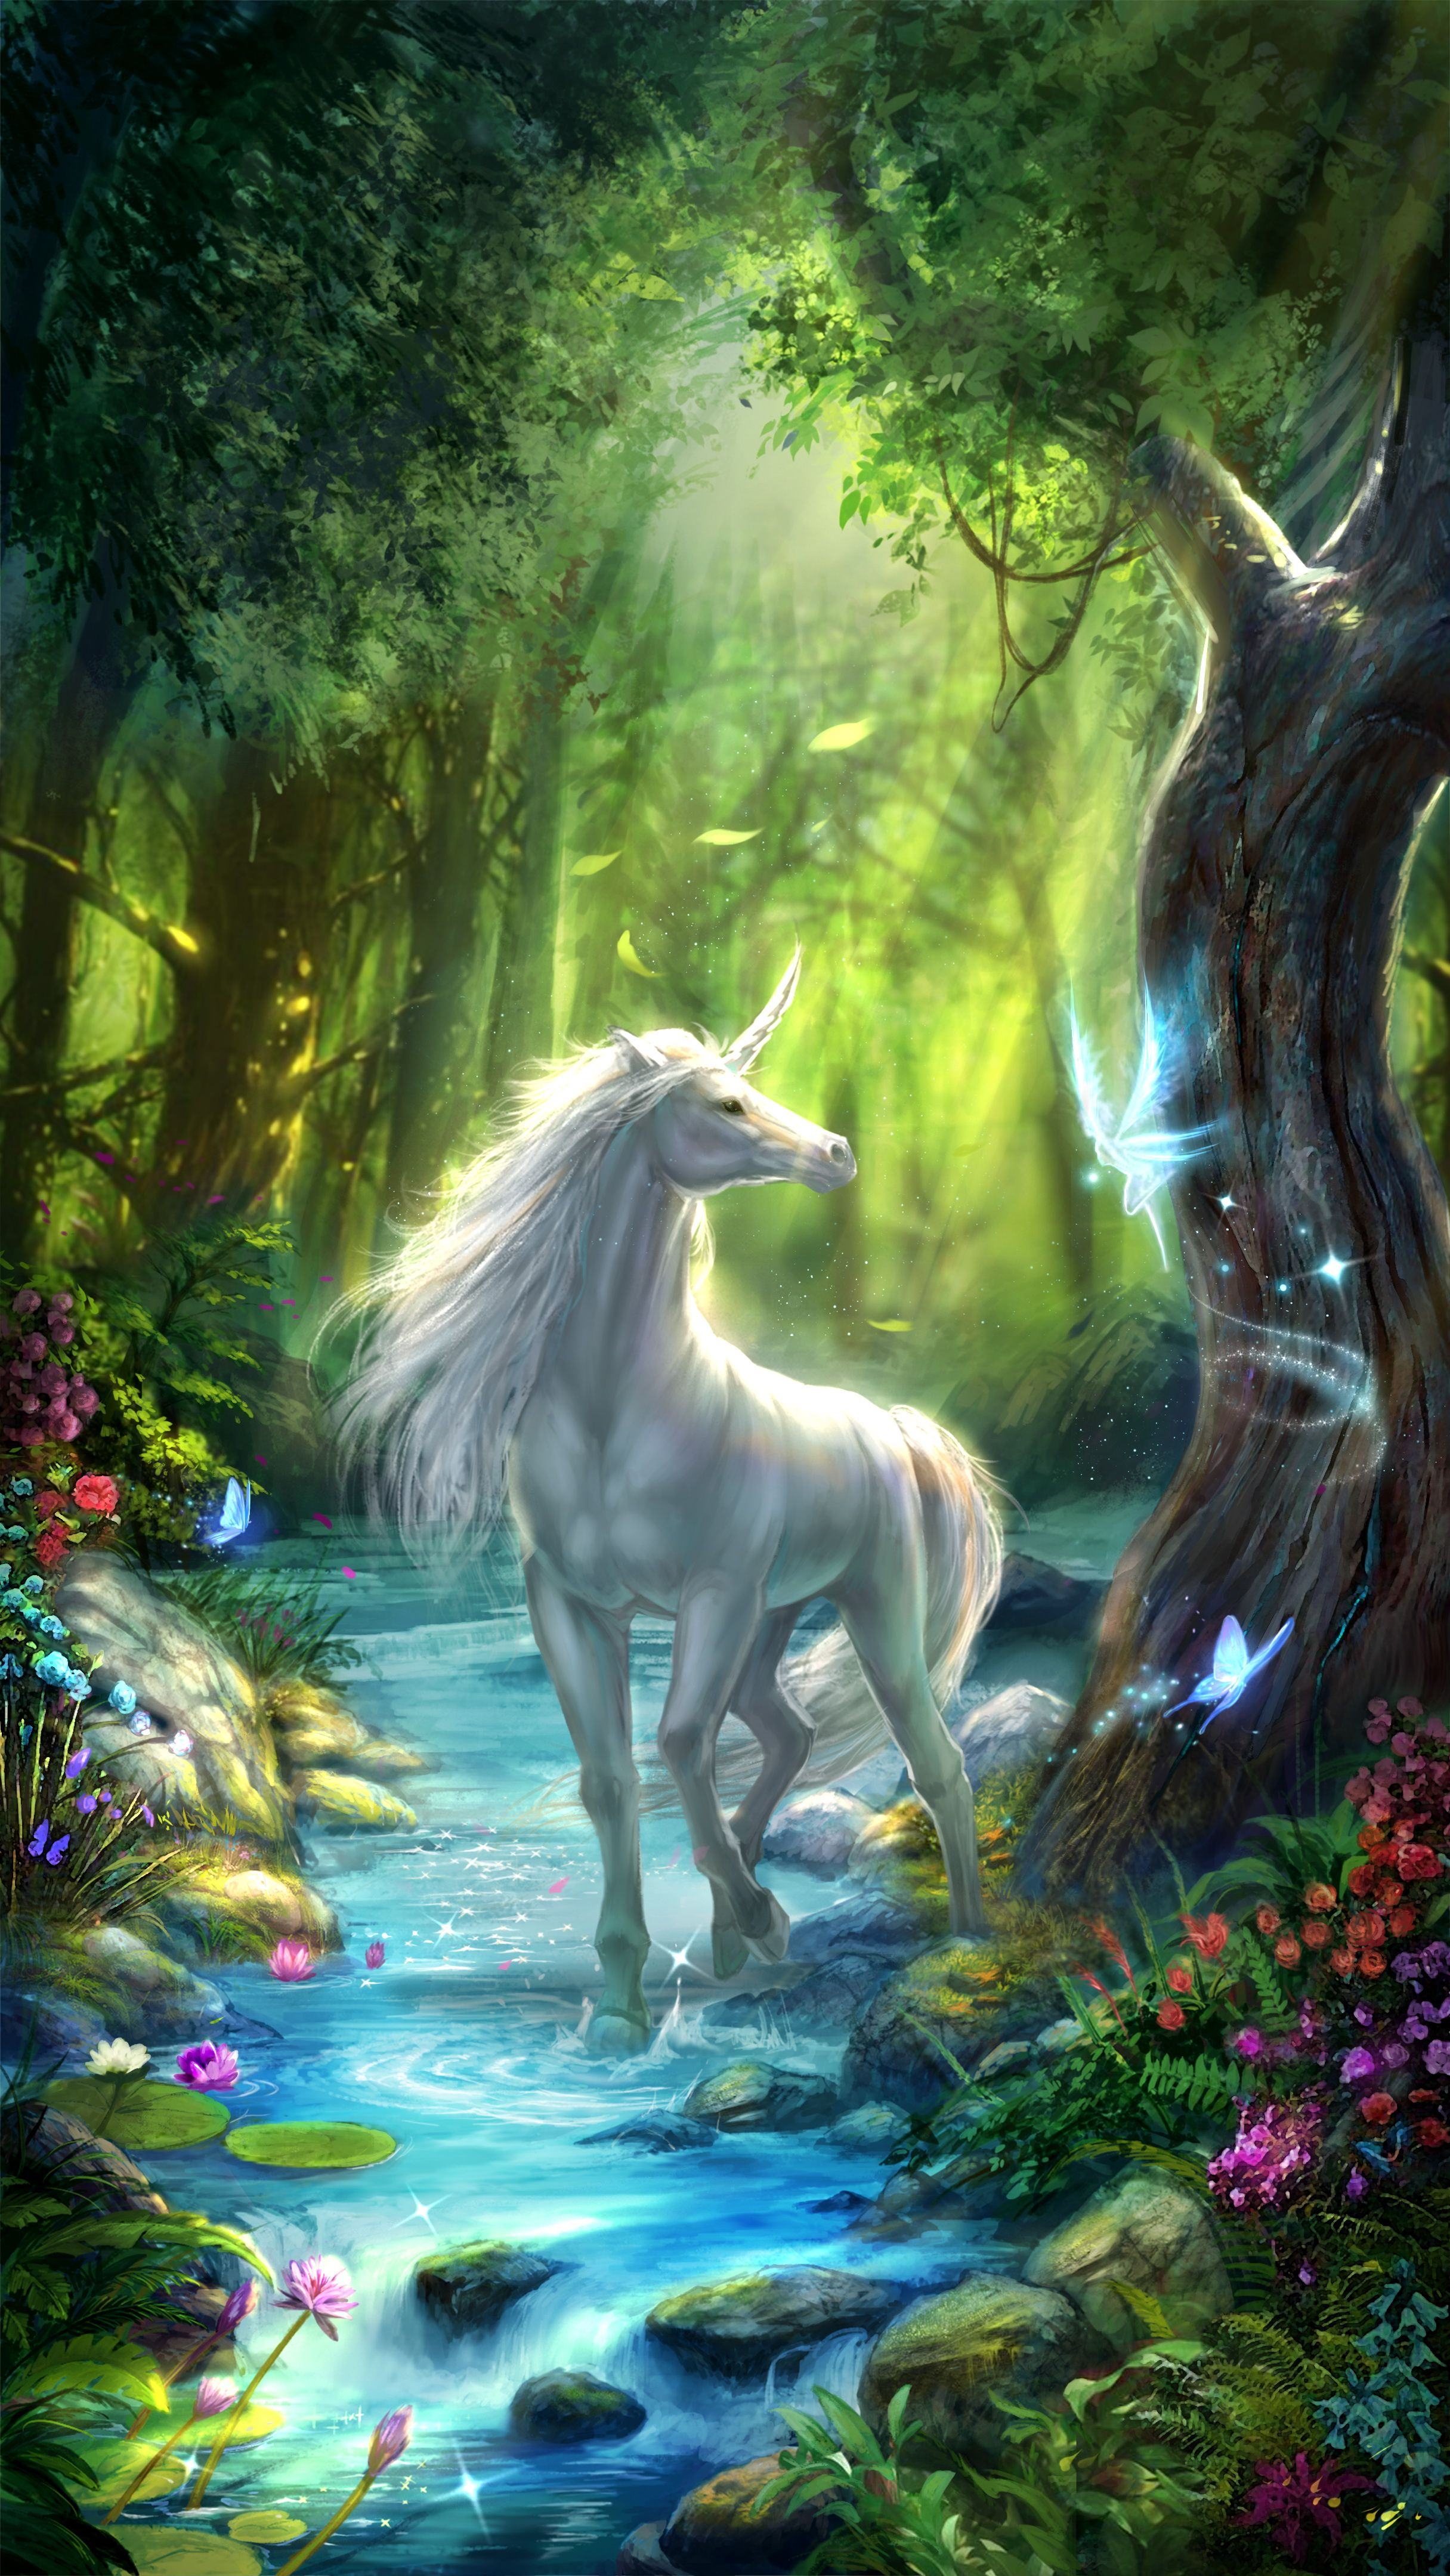 Unicorn live wallpaper, white unicorn in the fairy forest, very fantastic and dreamy! | Android ...